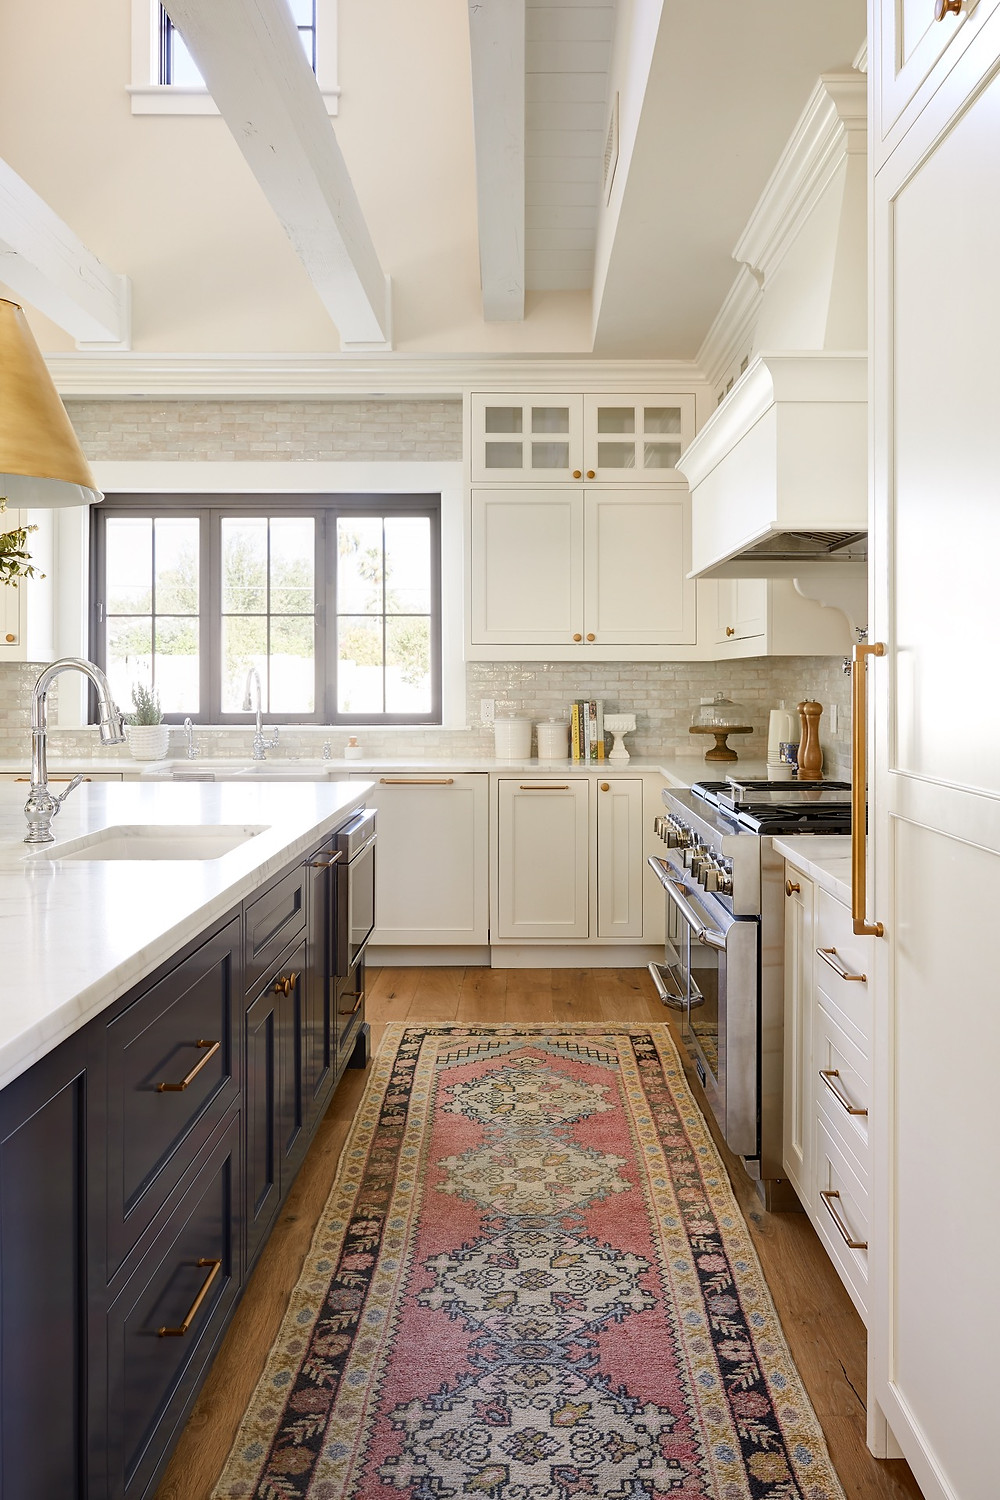 The difference between a full furnishing project and a remodel or new construction project. Bright and airy transitional kitchen with white cabinets and dark island with oversized brass pendant lights designed by Lexi Westergard Design.